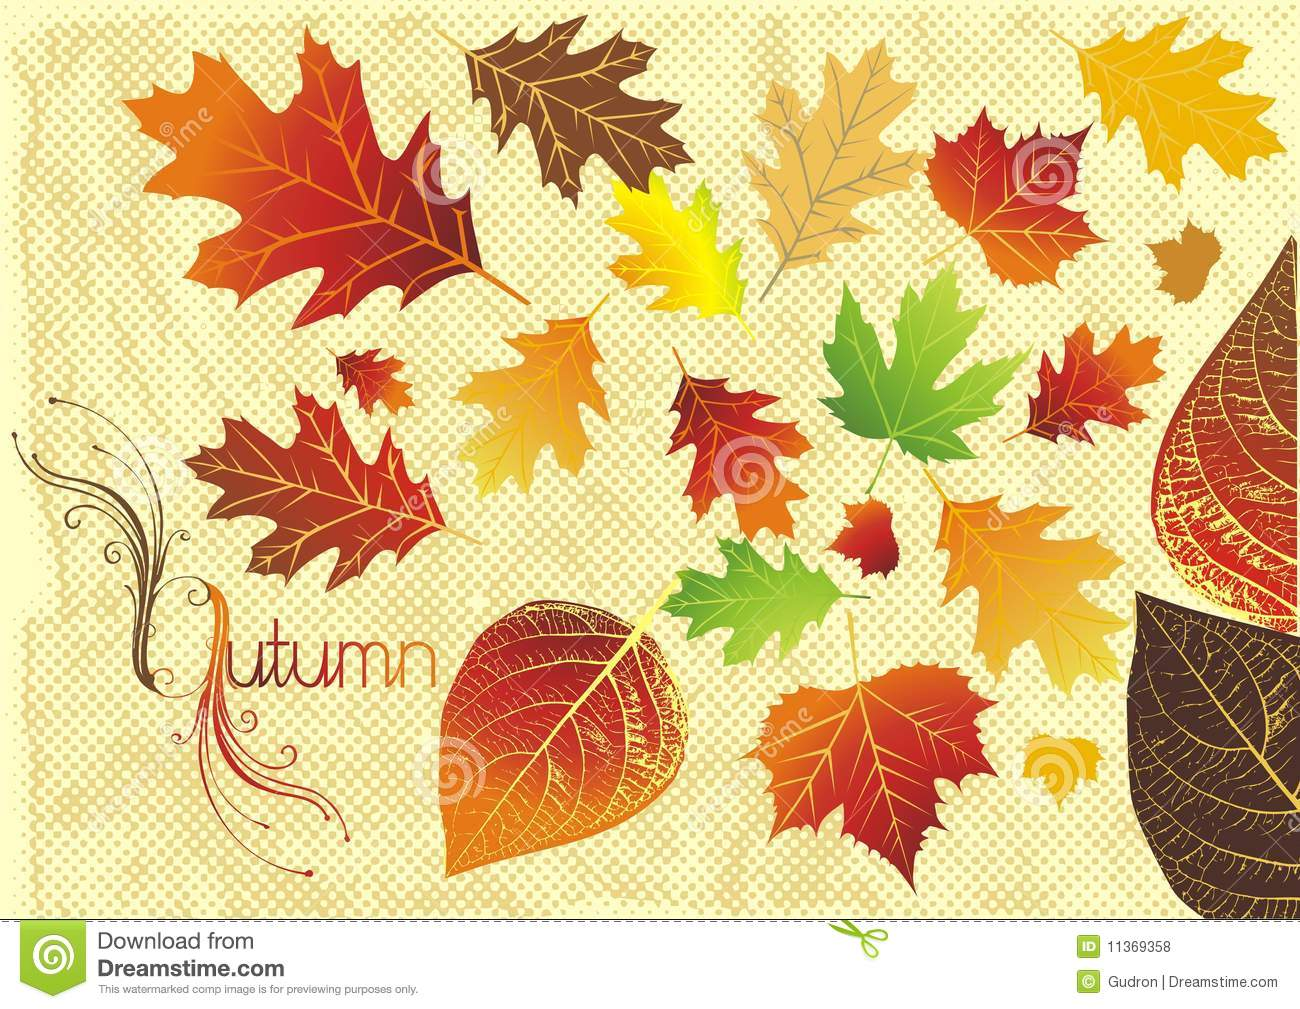 Free Fall Foliage Wallpaper Fall Leaves Illustration Stock Illustration Illustration